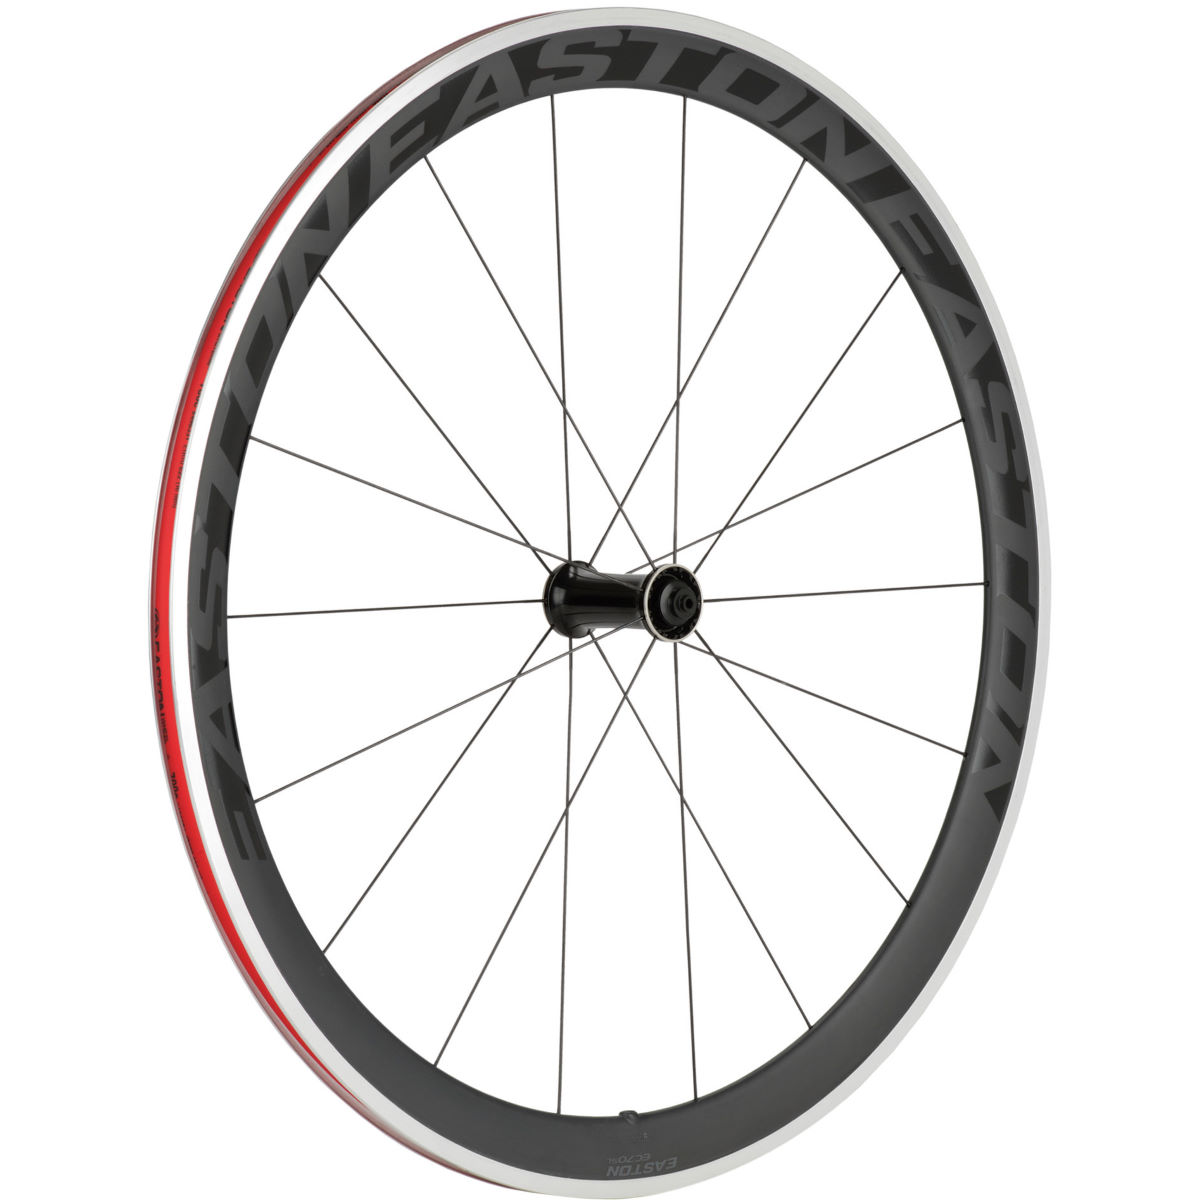 Easton EC70 SL Road Front Wheel - Ruedas de competición